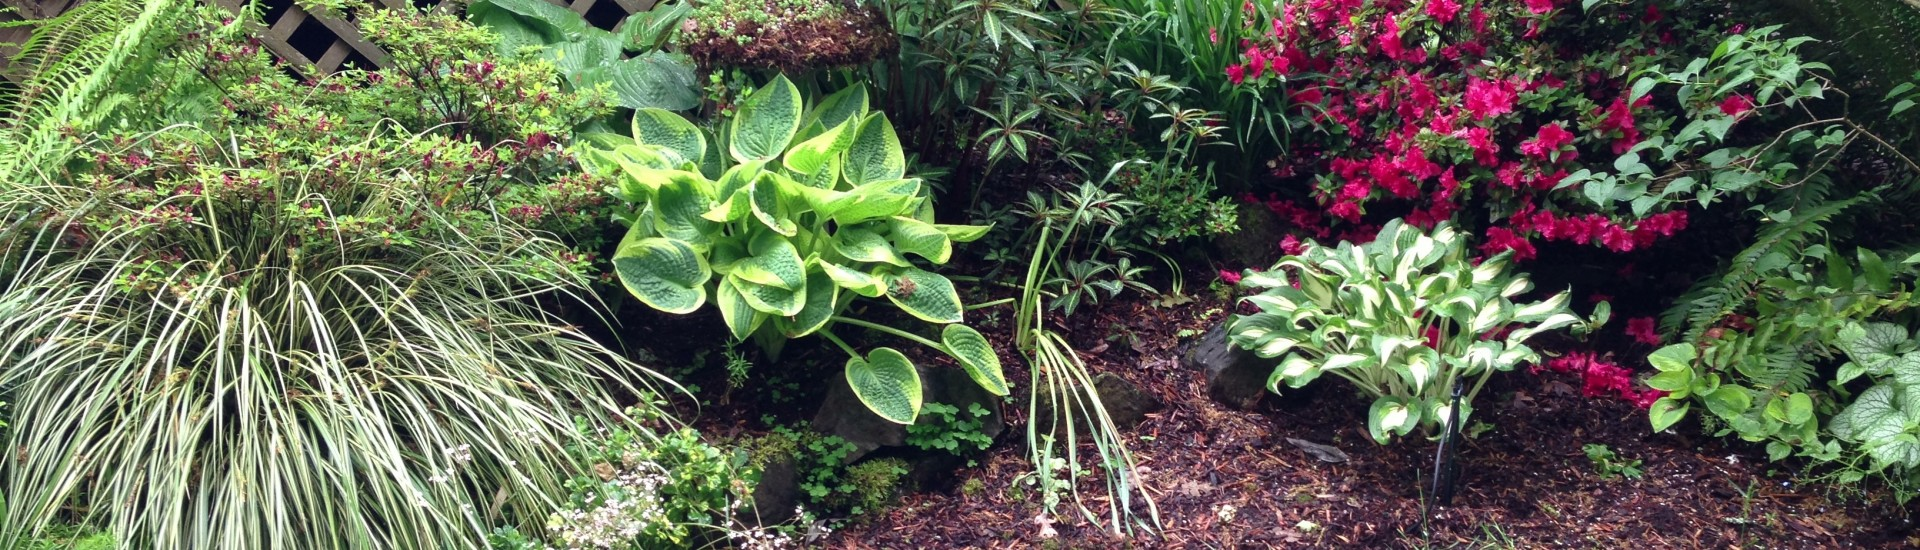 Plant height eases transition from deck to lawn.